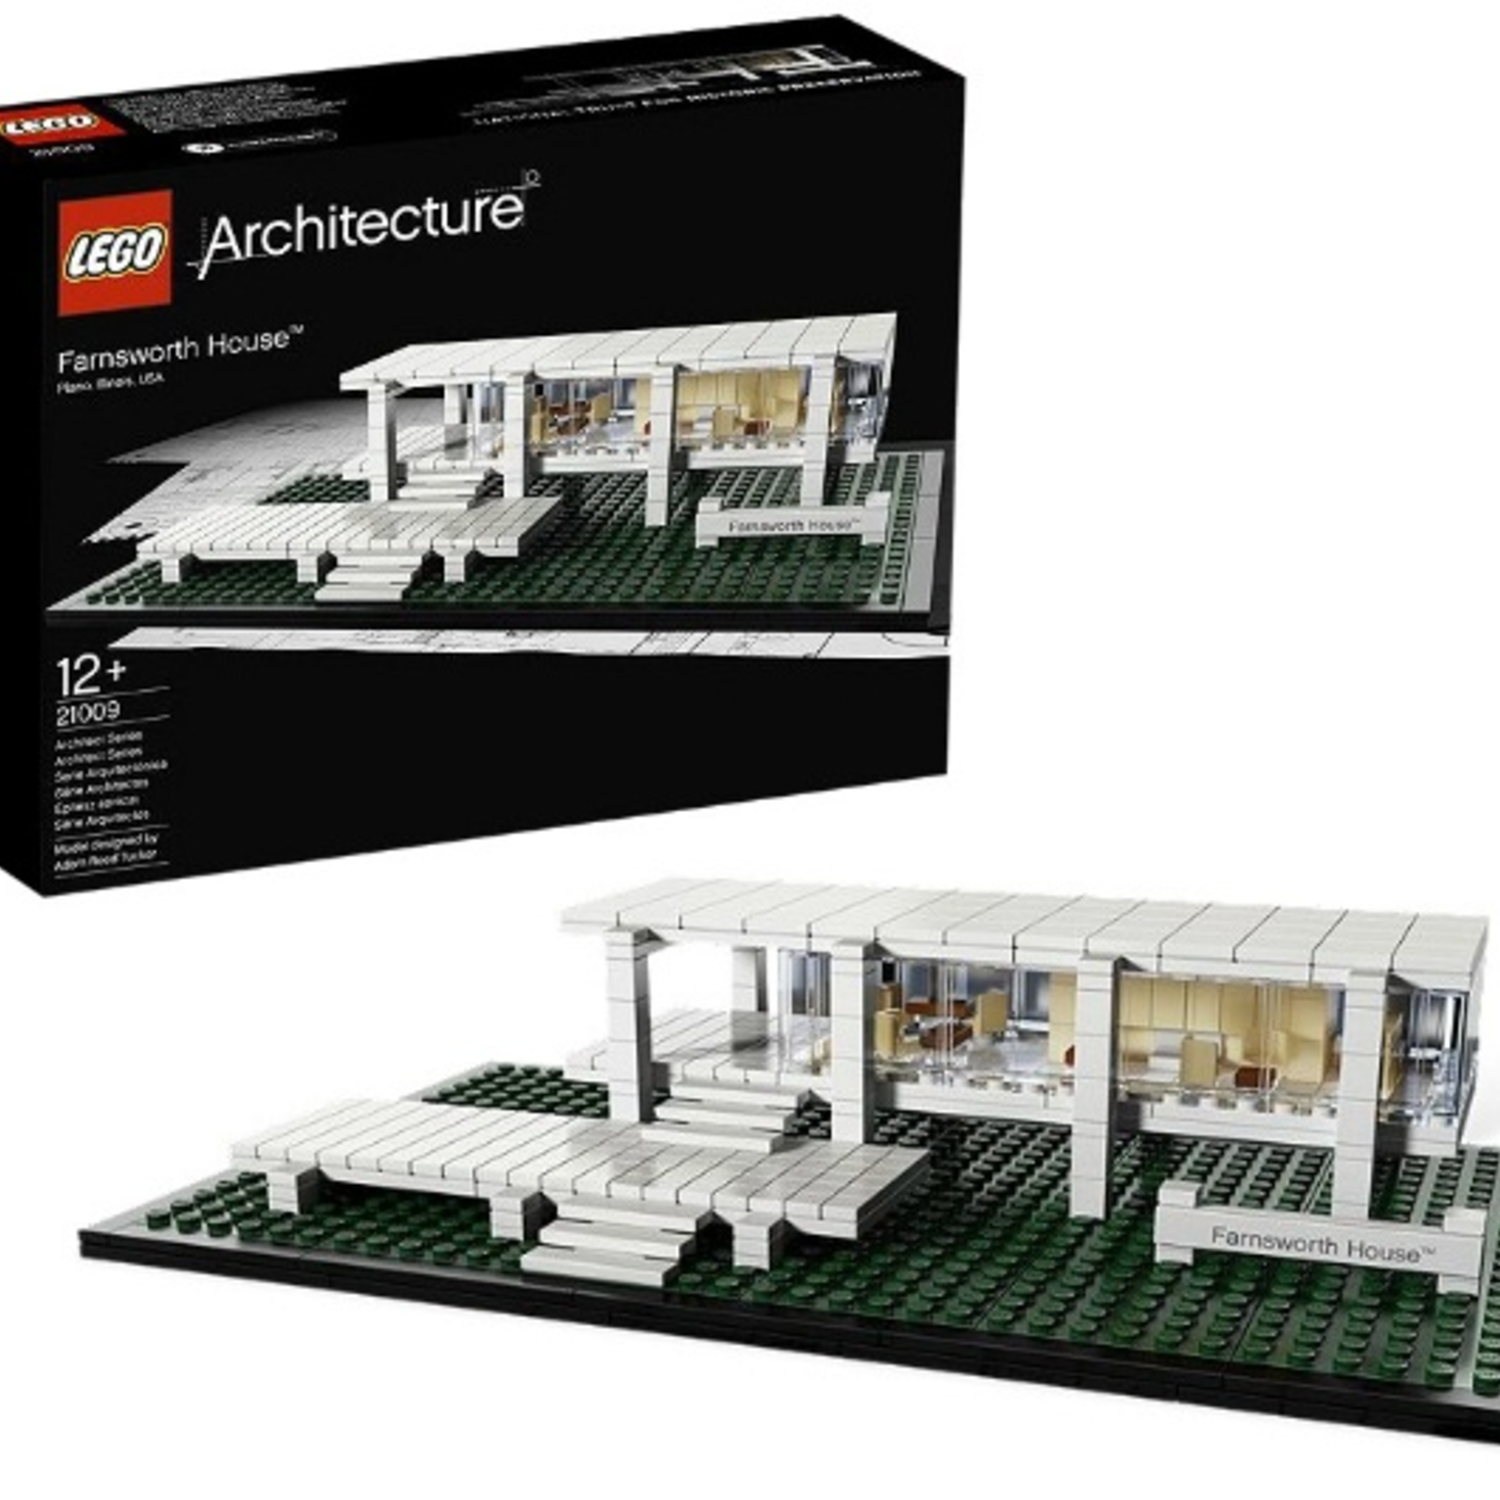 lego architecture farnsworth house milledoni spot on gifts. Black Bedroom Furniture Sets. Home Design Ideas